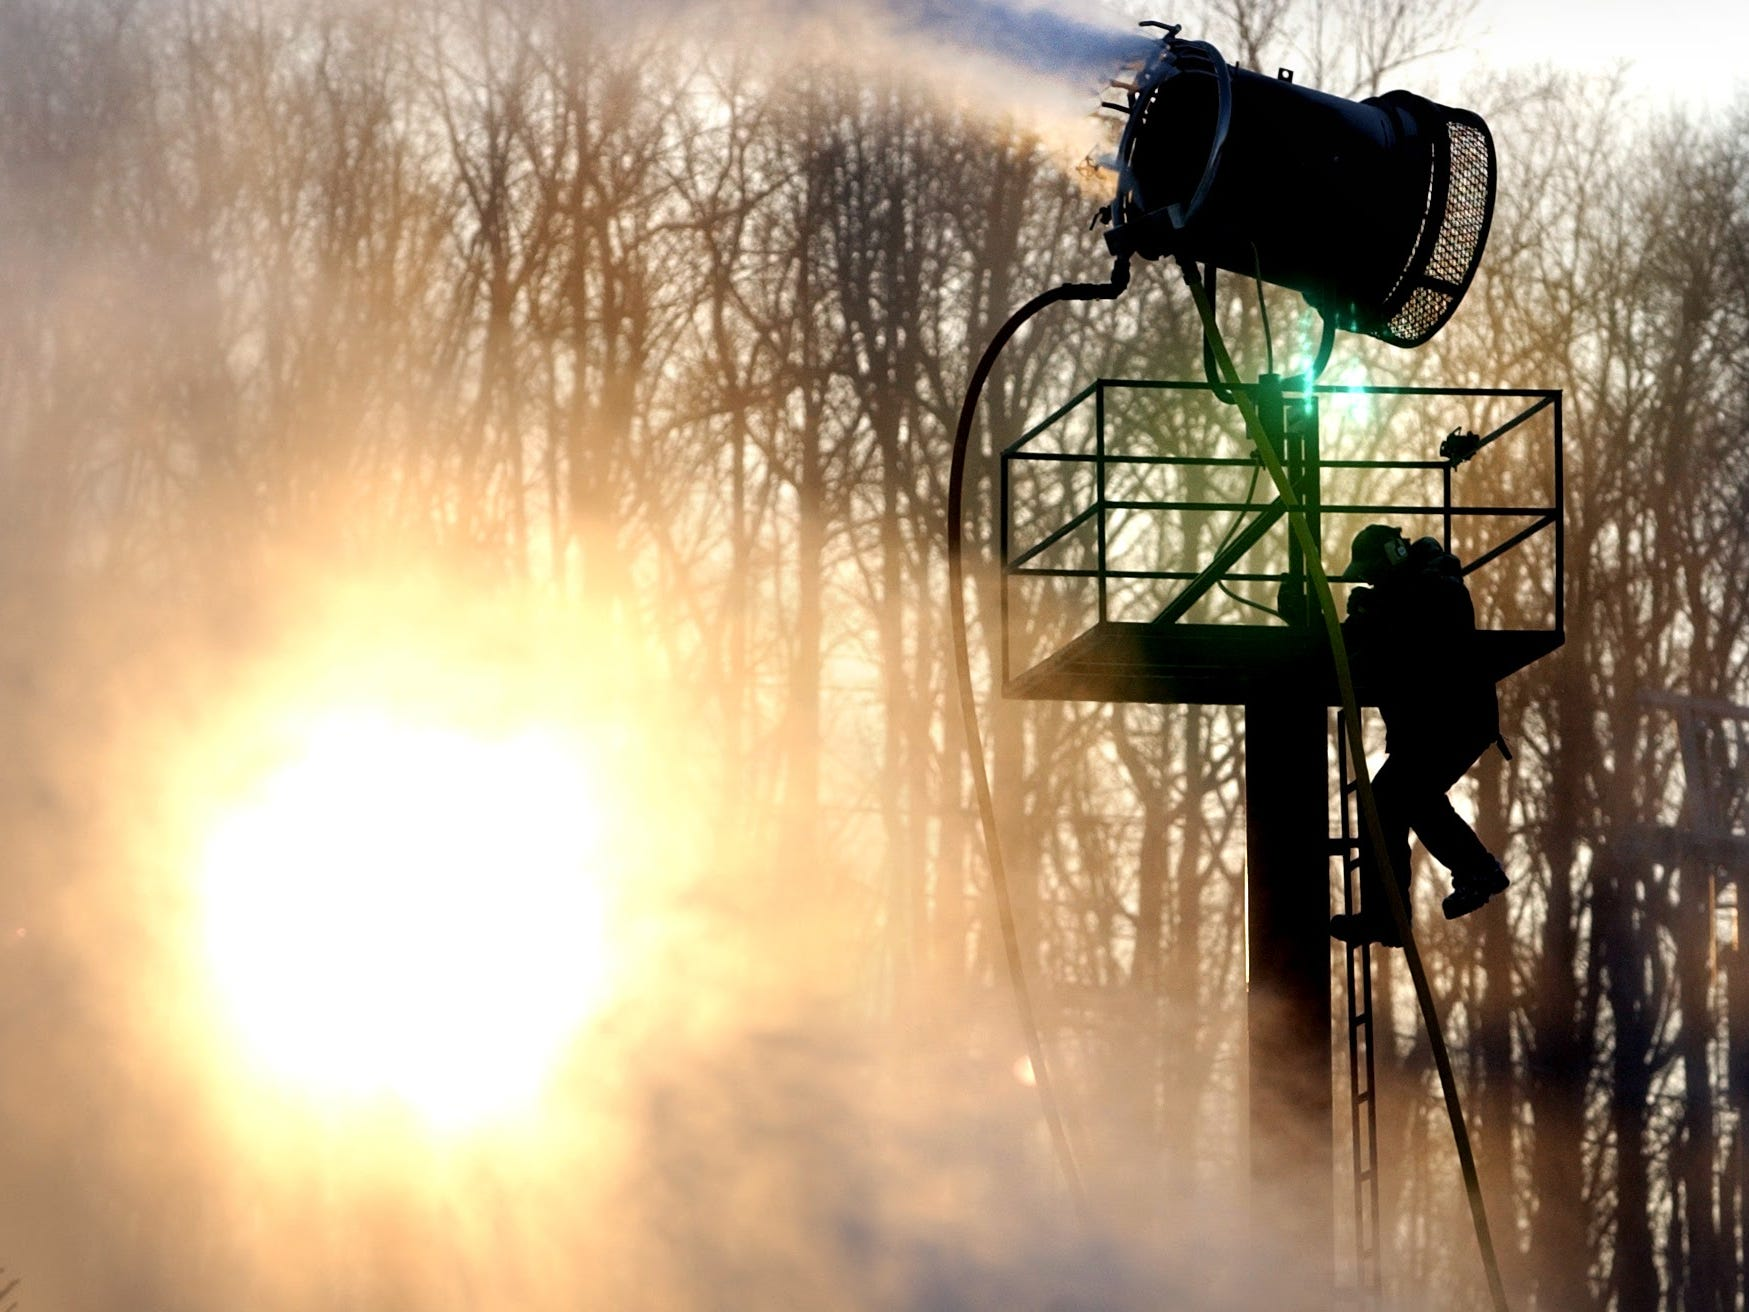 Steve Wix climbs down from a snow gun at Ski Roundtop December 26, 2001. About 30-40 snow guns were running at sunset as conditions for snow making were favorable for opening day.